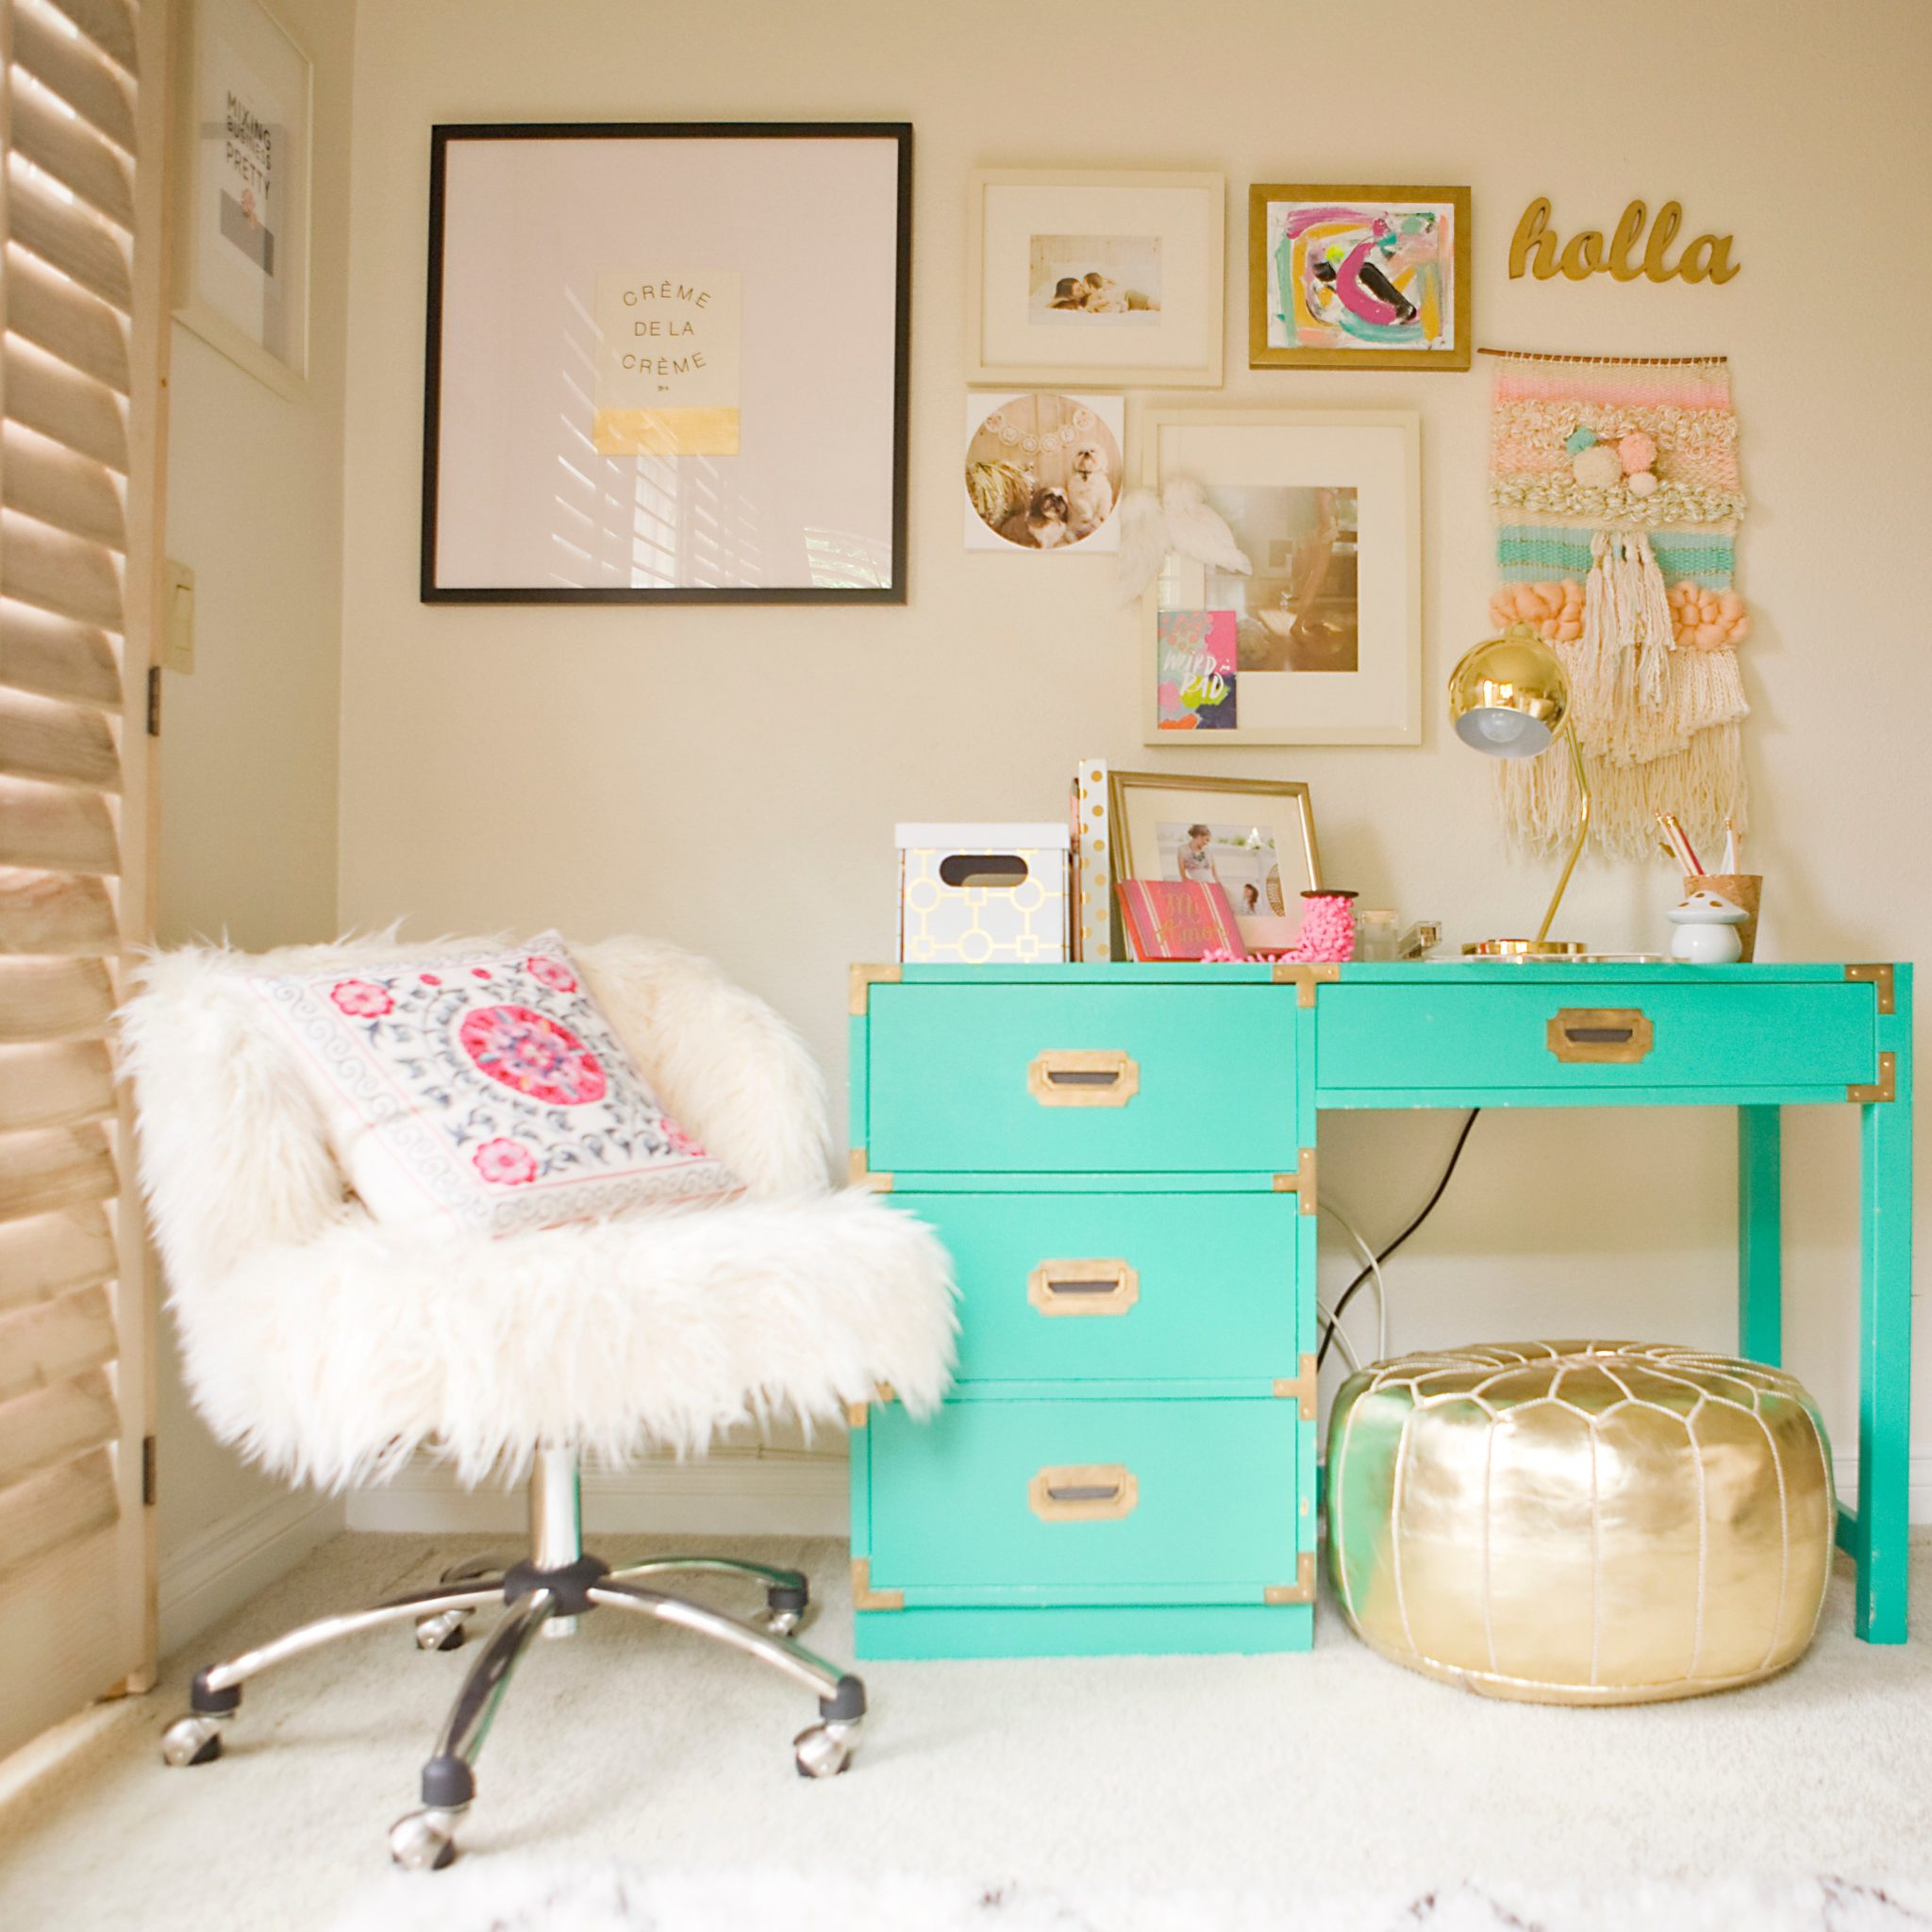 Small home office with many golden details